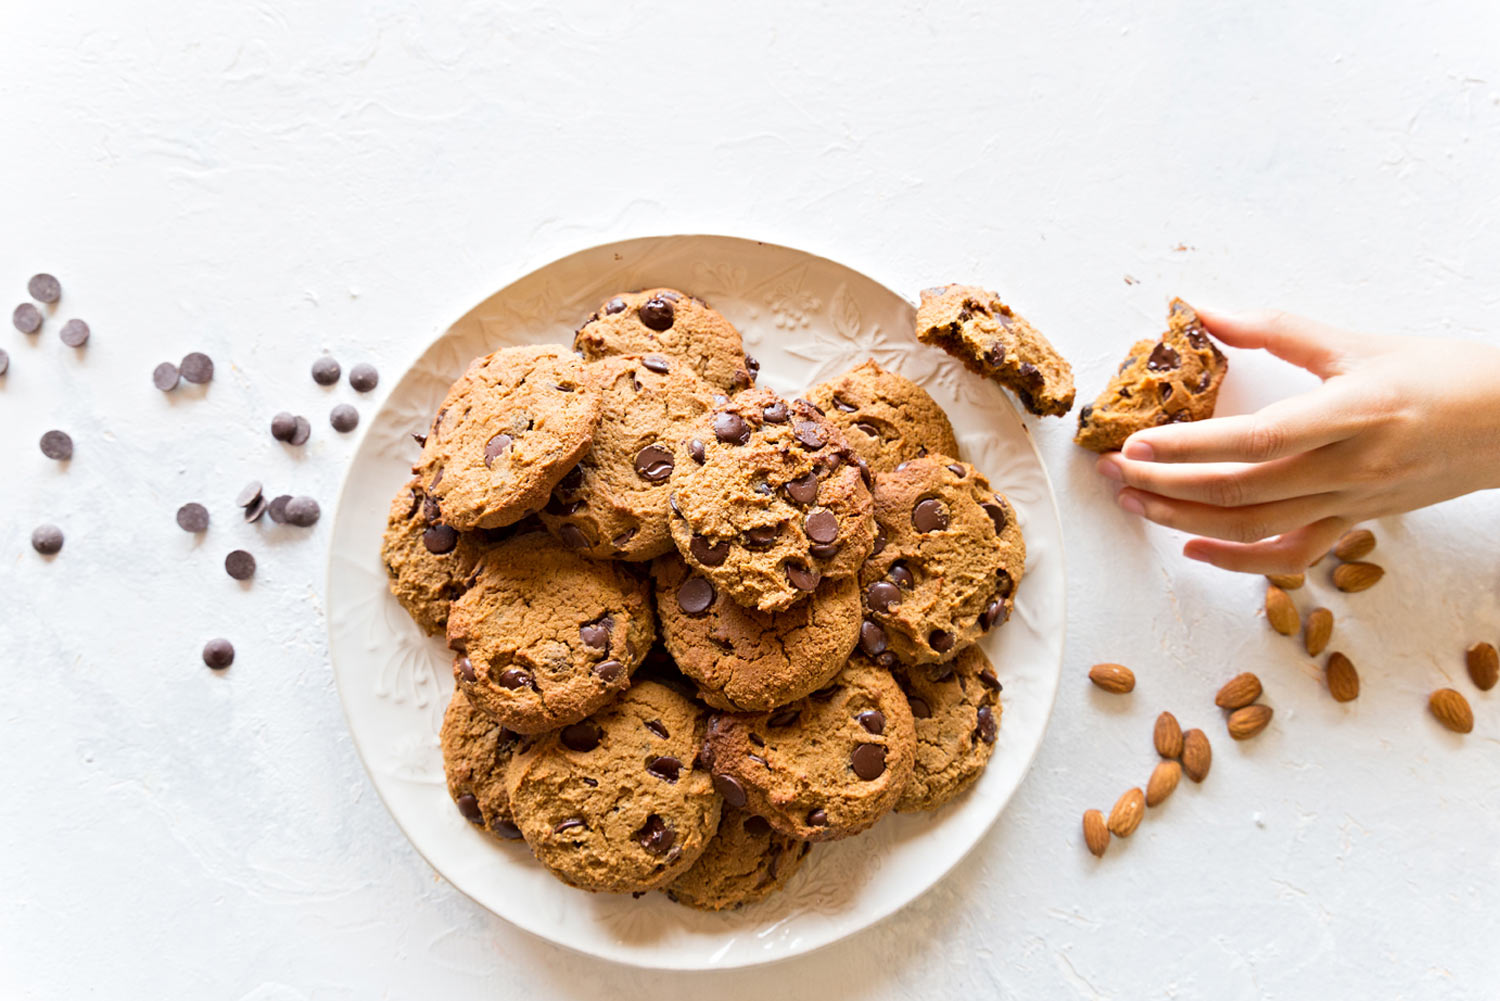 Vegan choc chip cookies